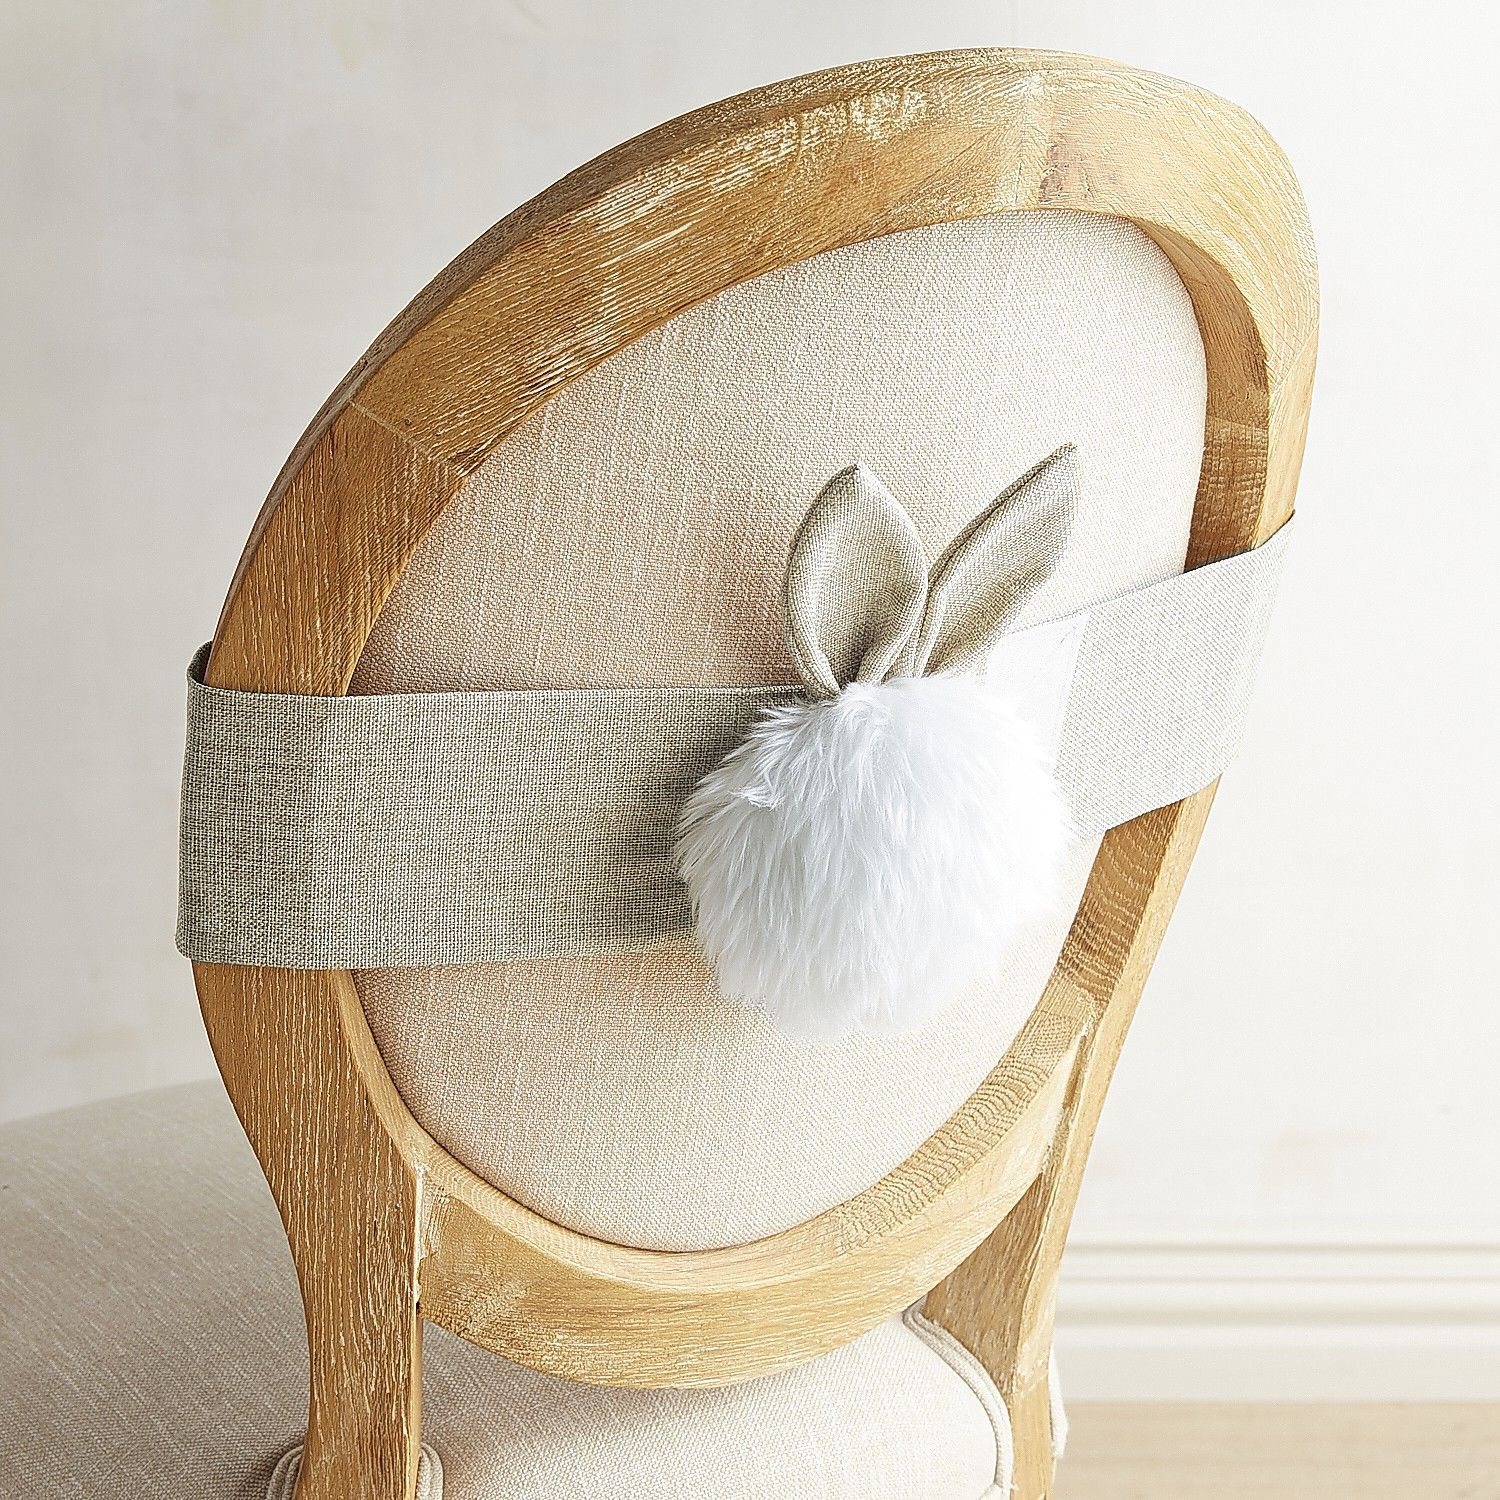 EASTER DECORATING IDEAS Easter is on the horizon. And